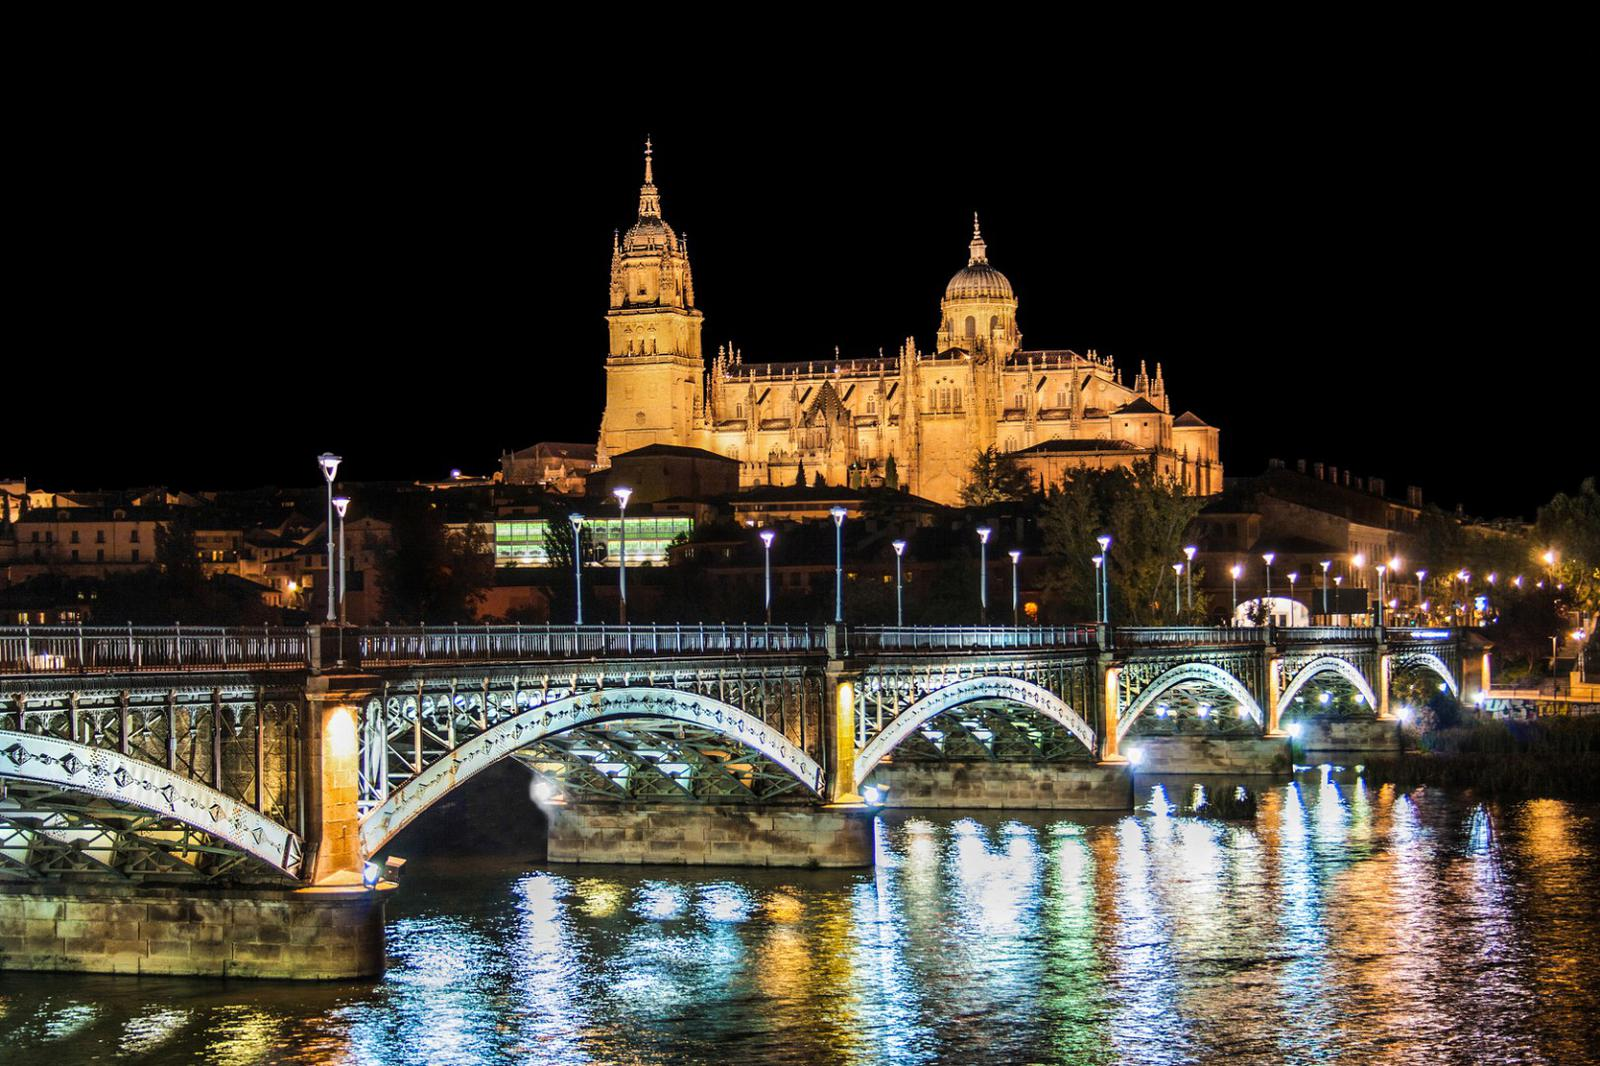 Historic city of Salamanca with river Tormes at night, Spain